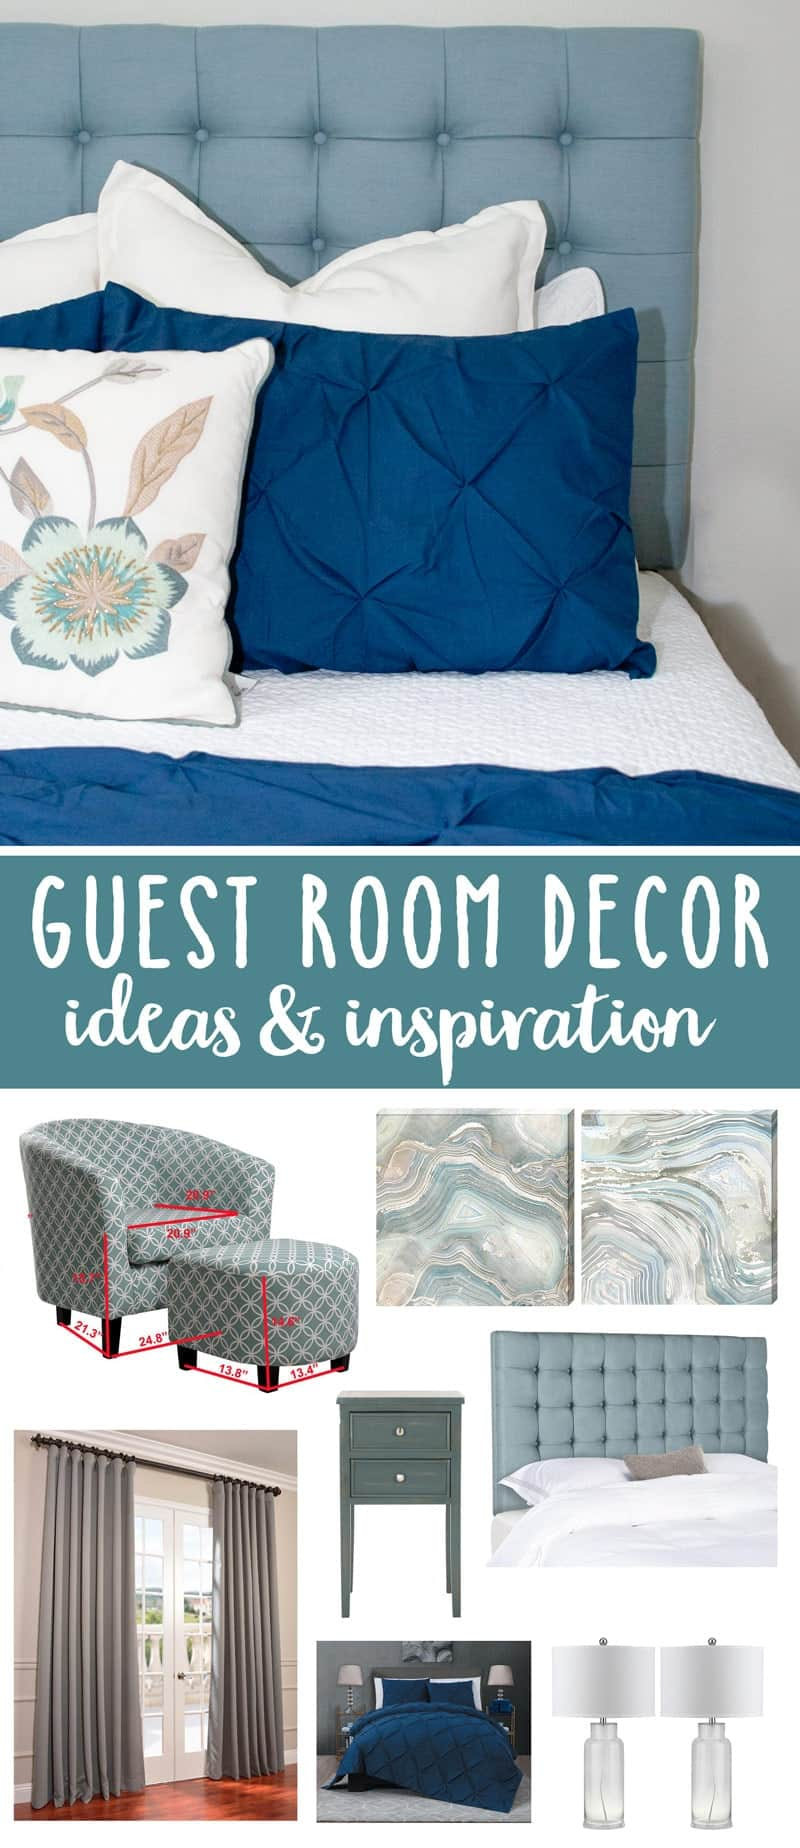 Blue and Teal Guest Room Decor (Ideas and Inspiration)